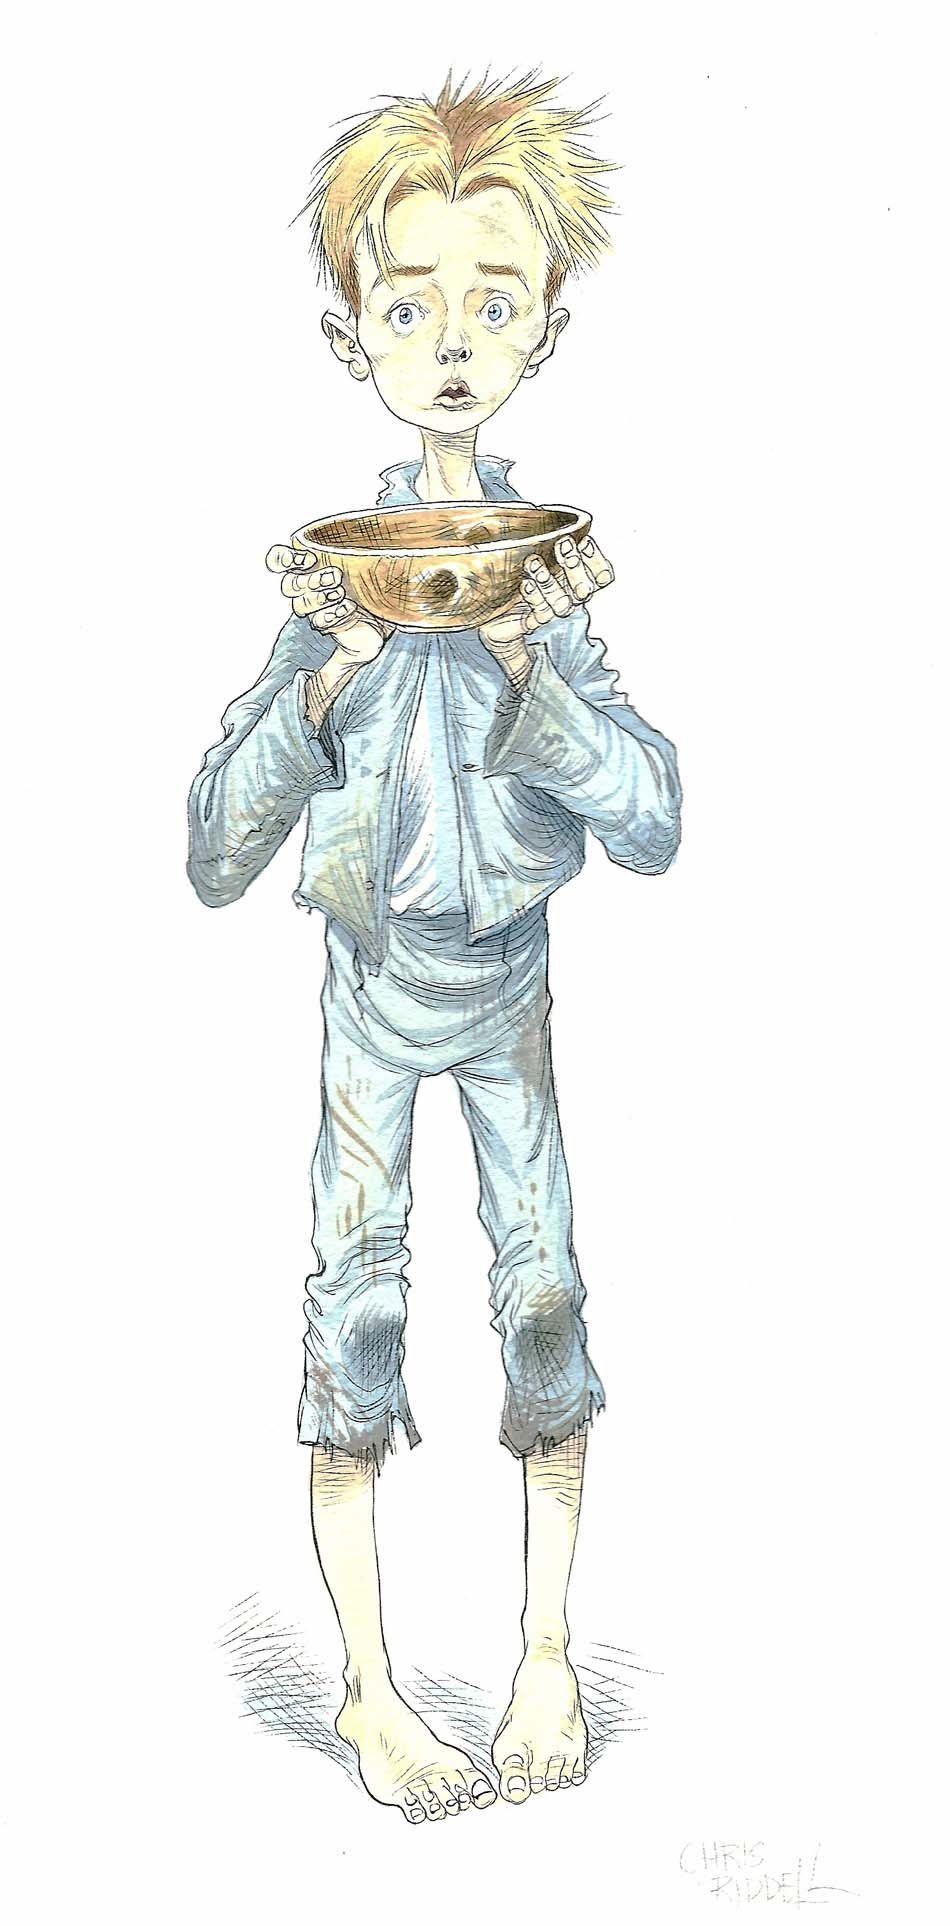 oliver twist illustration oliver theatrical production oliver twist illustration